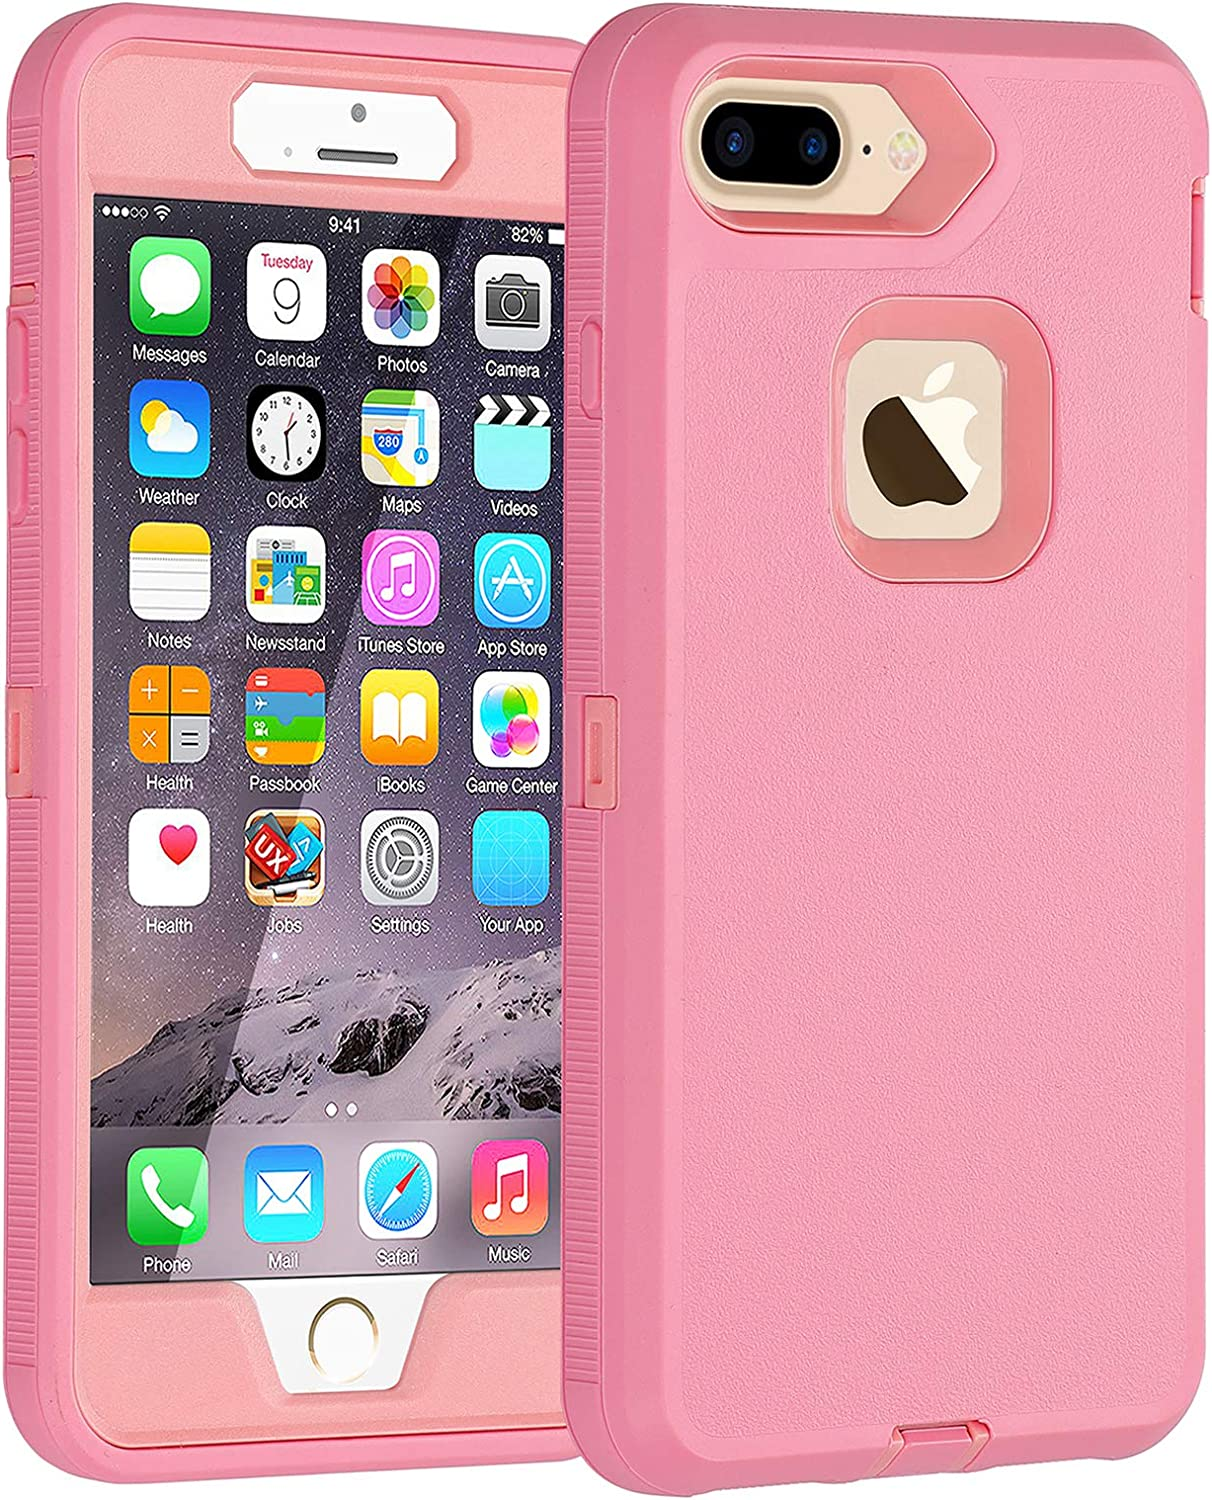 Co-Goldguard Case for iPhone 7 Plus/8 Plus Heavy Duty 3 in 1 Built-in Screen Protector Durable Cover Dust-Proof Shockproof Scratch-Resistant Shell Compatible with iPhone 7+/8+ 5.5,Pink